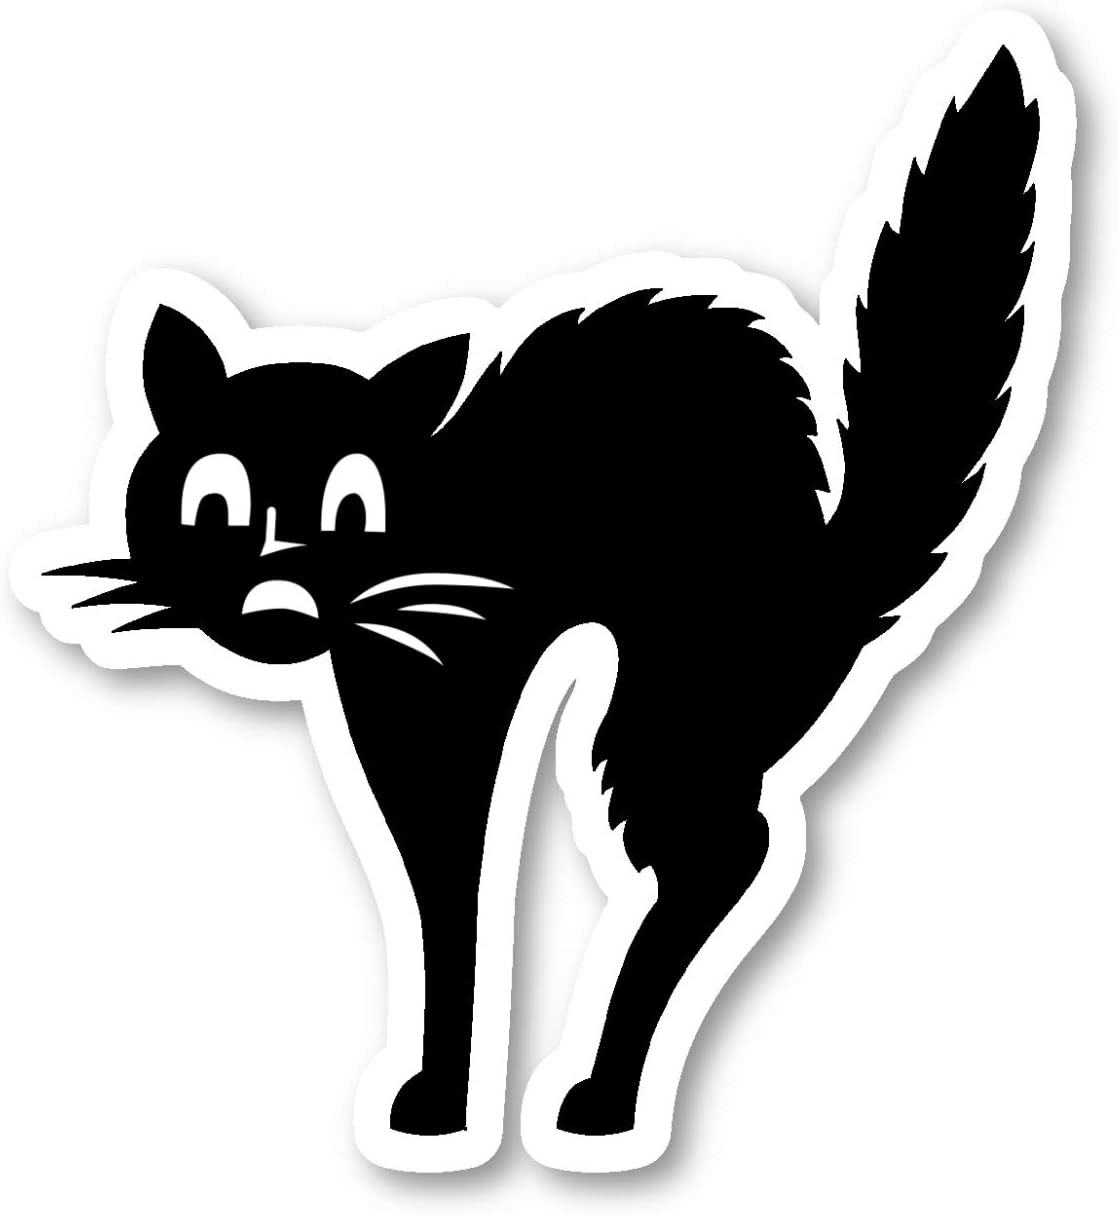 Scared Cat Sticker Funny Cats Stickers - Laptop Stickers - 2.5 Inches Vinyl Decal - Laptop, Phone, Tablet Vinyl Decal Sticker S214531